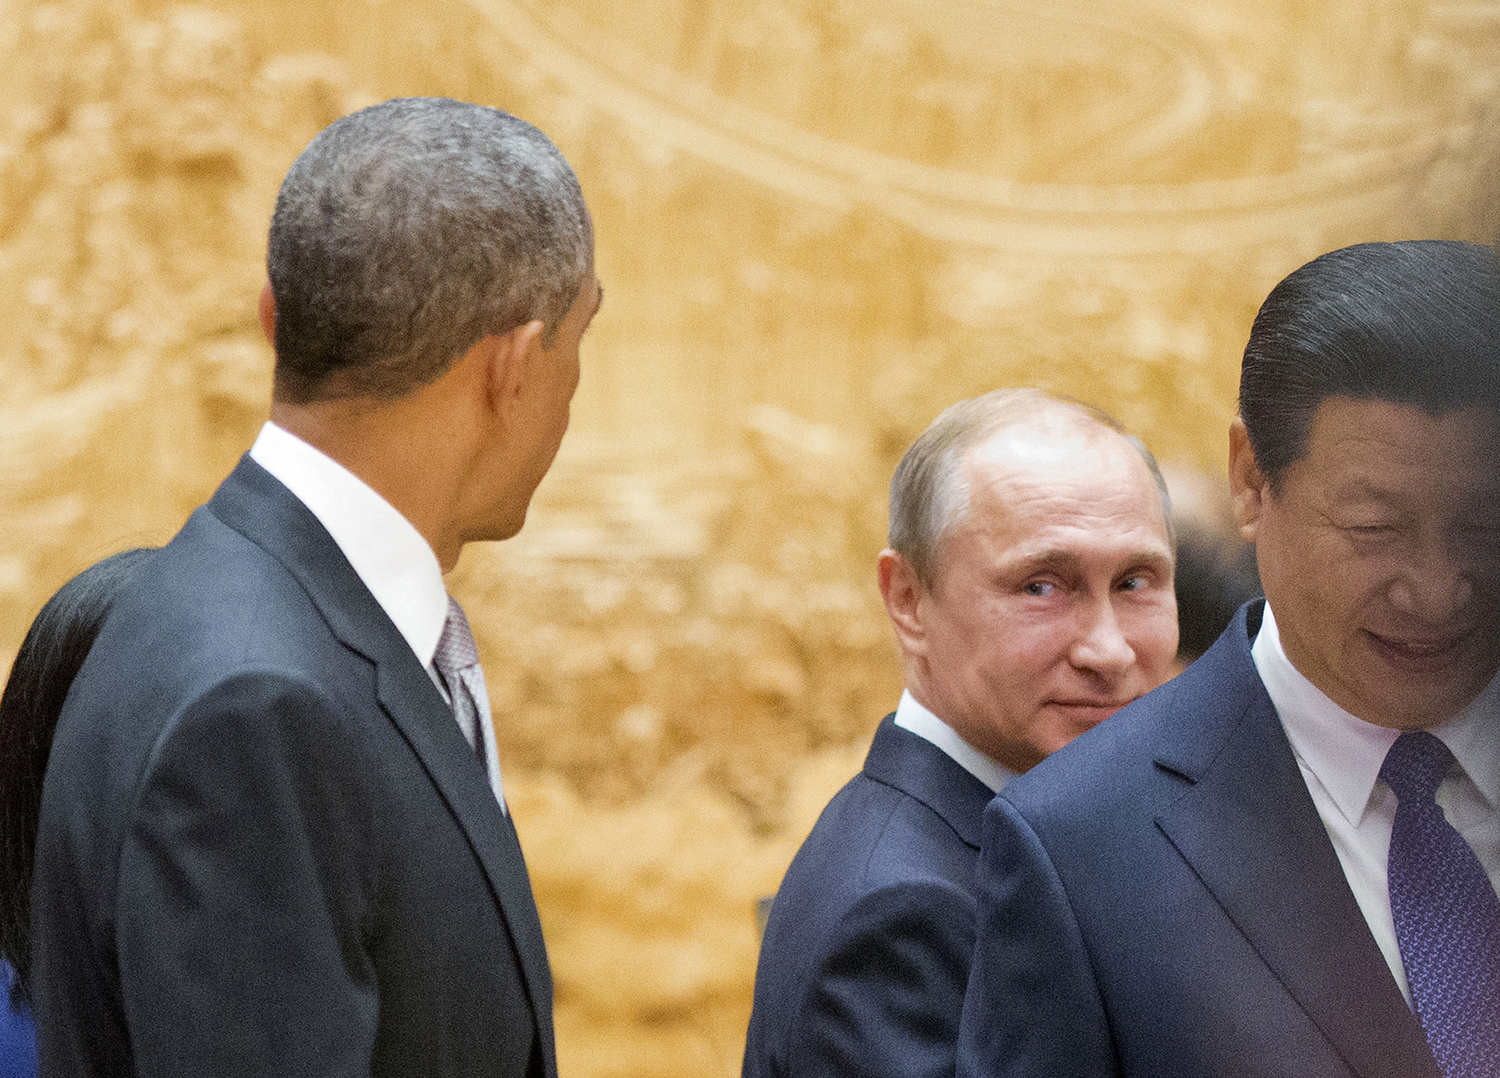 Russian President Vladimir Putin, center, looks back at U.S. President Barack Obama, left, as they arrive with Chinese President Xi Jinping, right, at an Asia-Pacific Economic Cooperation summit plenary session in Beijing on Nov. 11, 2014